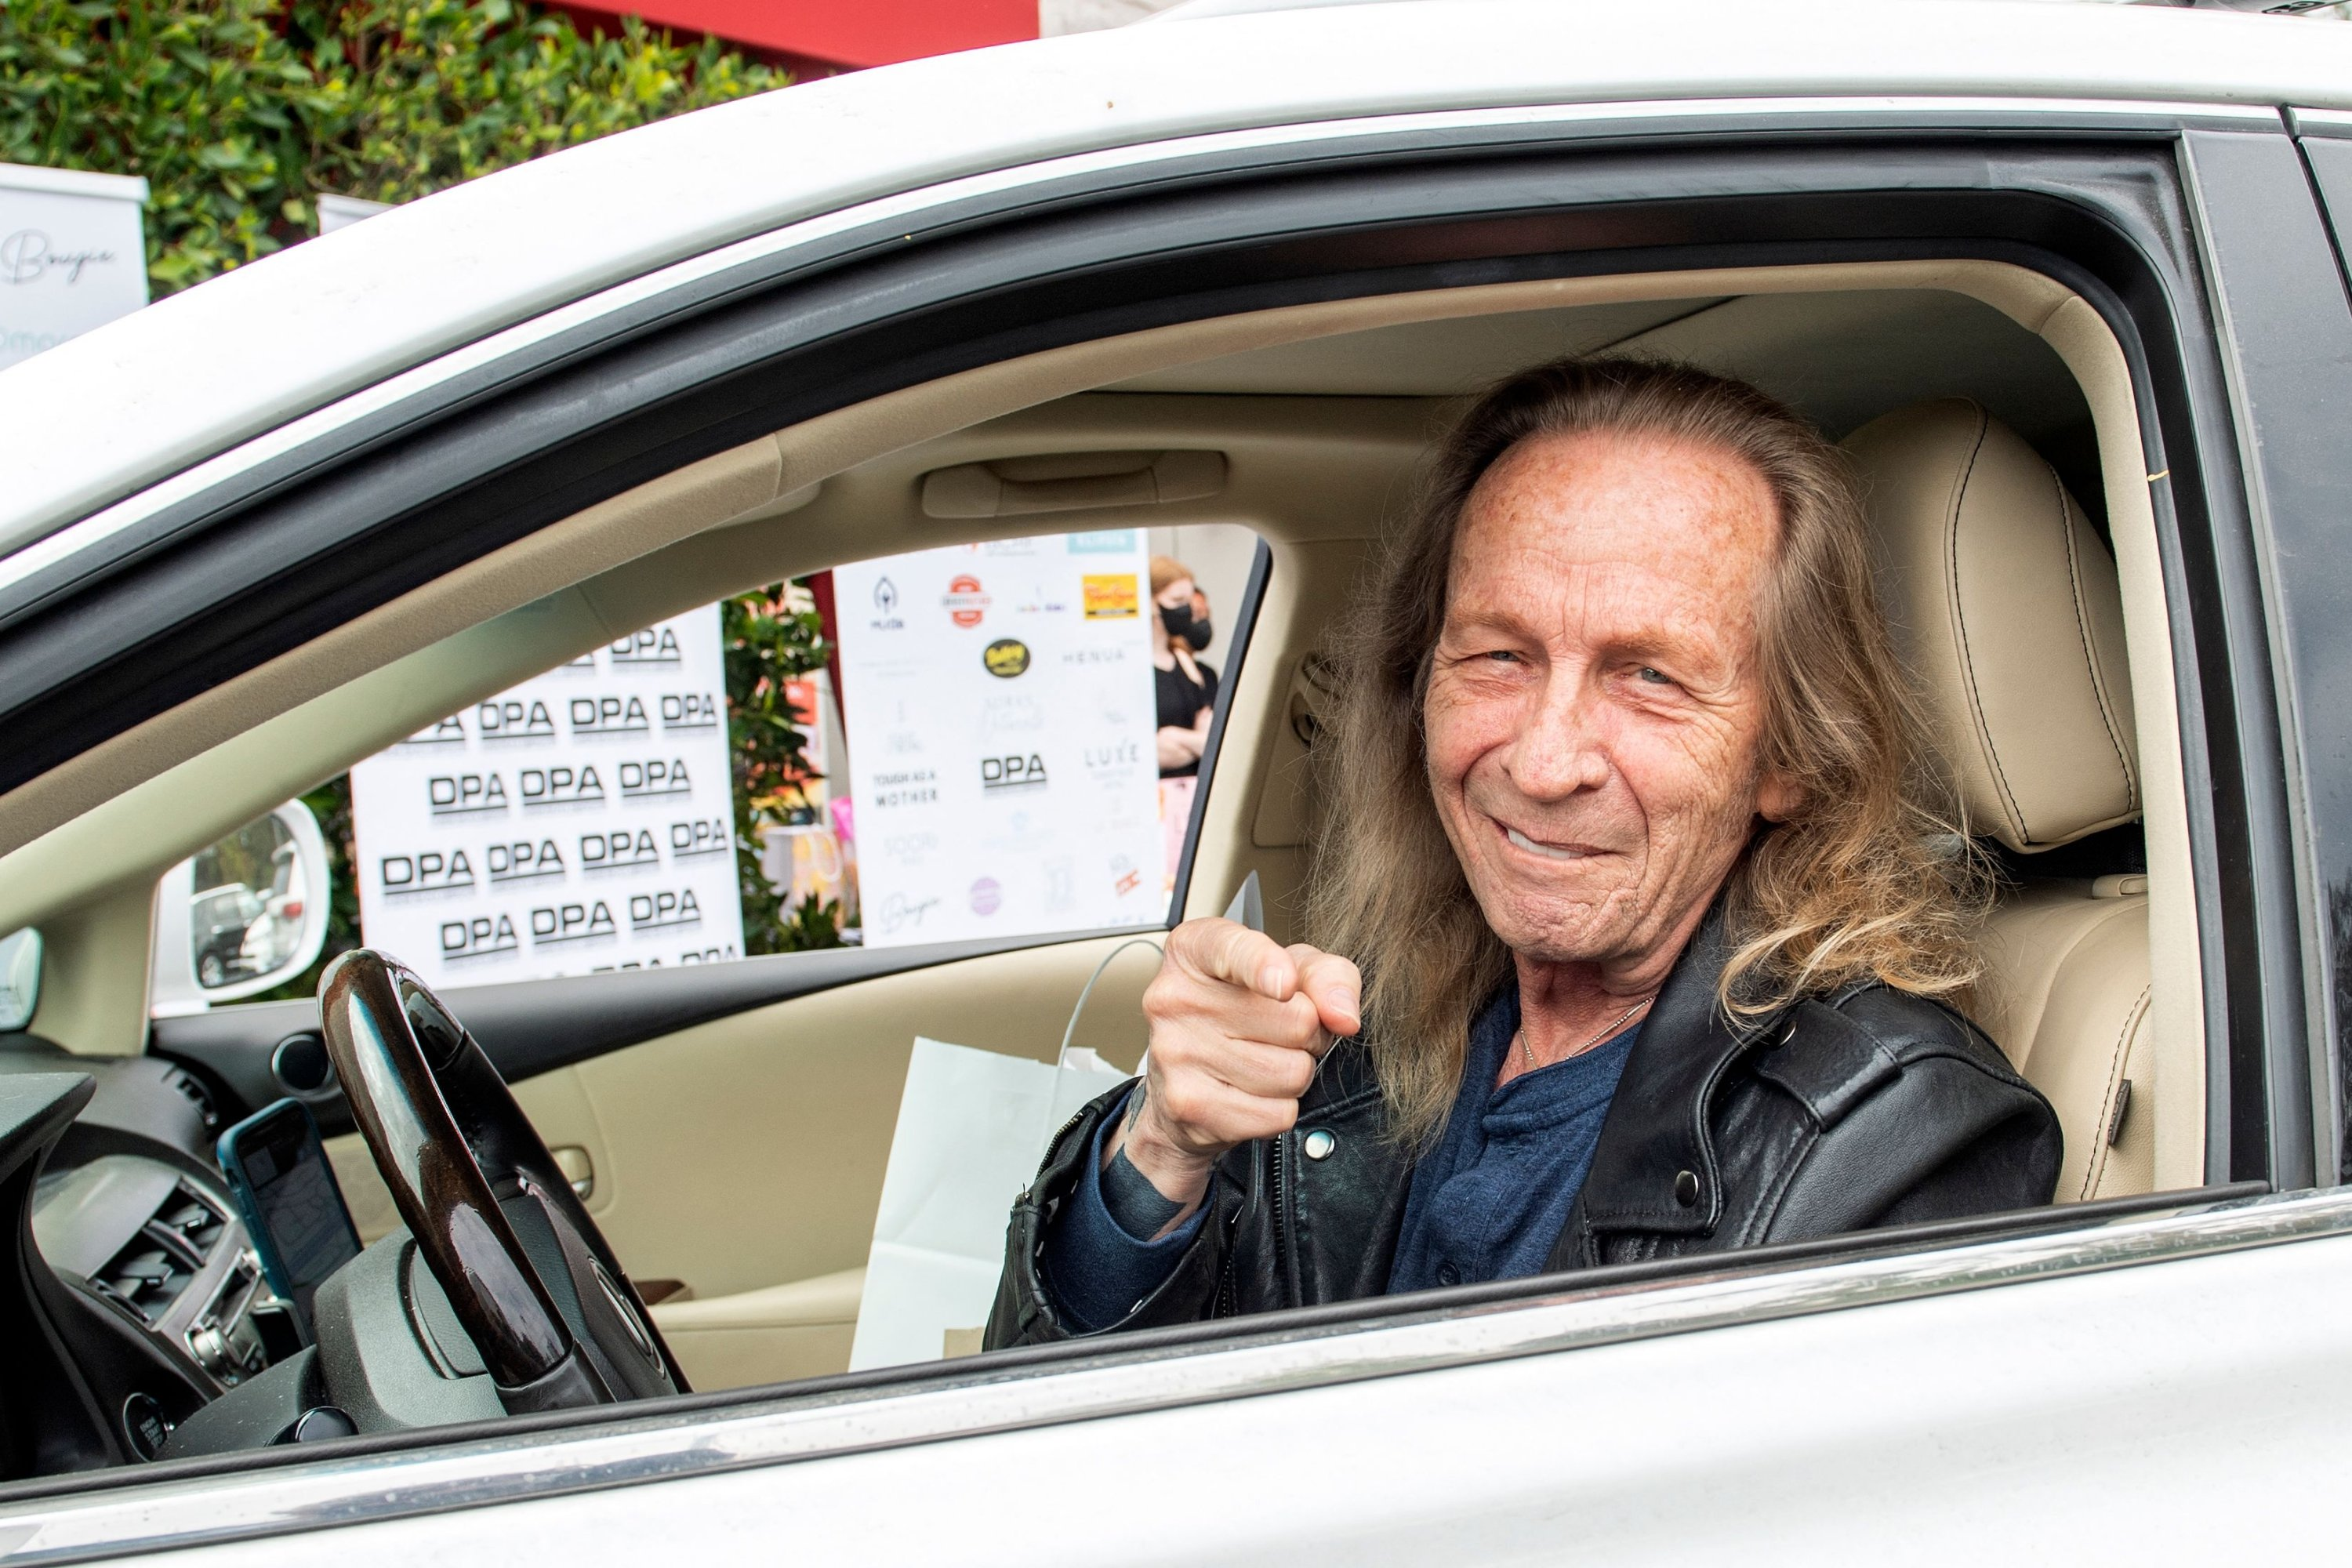 Paul Raci, nominated for an Academy Award for Best Supporting Actor for his role in 'Sound of Metal,' arrives to pick up his gift bags at the drive-through gifting event at the Luxe Hotel in Brentwood, California, U.S., April 24, 2021. (AFP Photo)